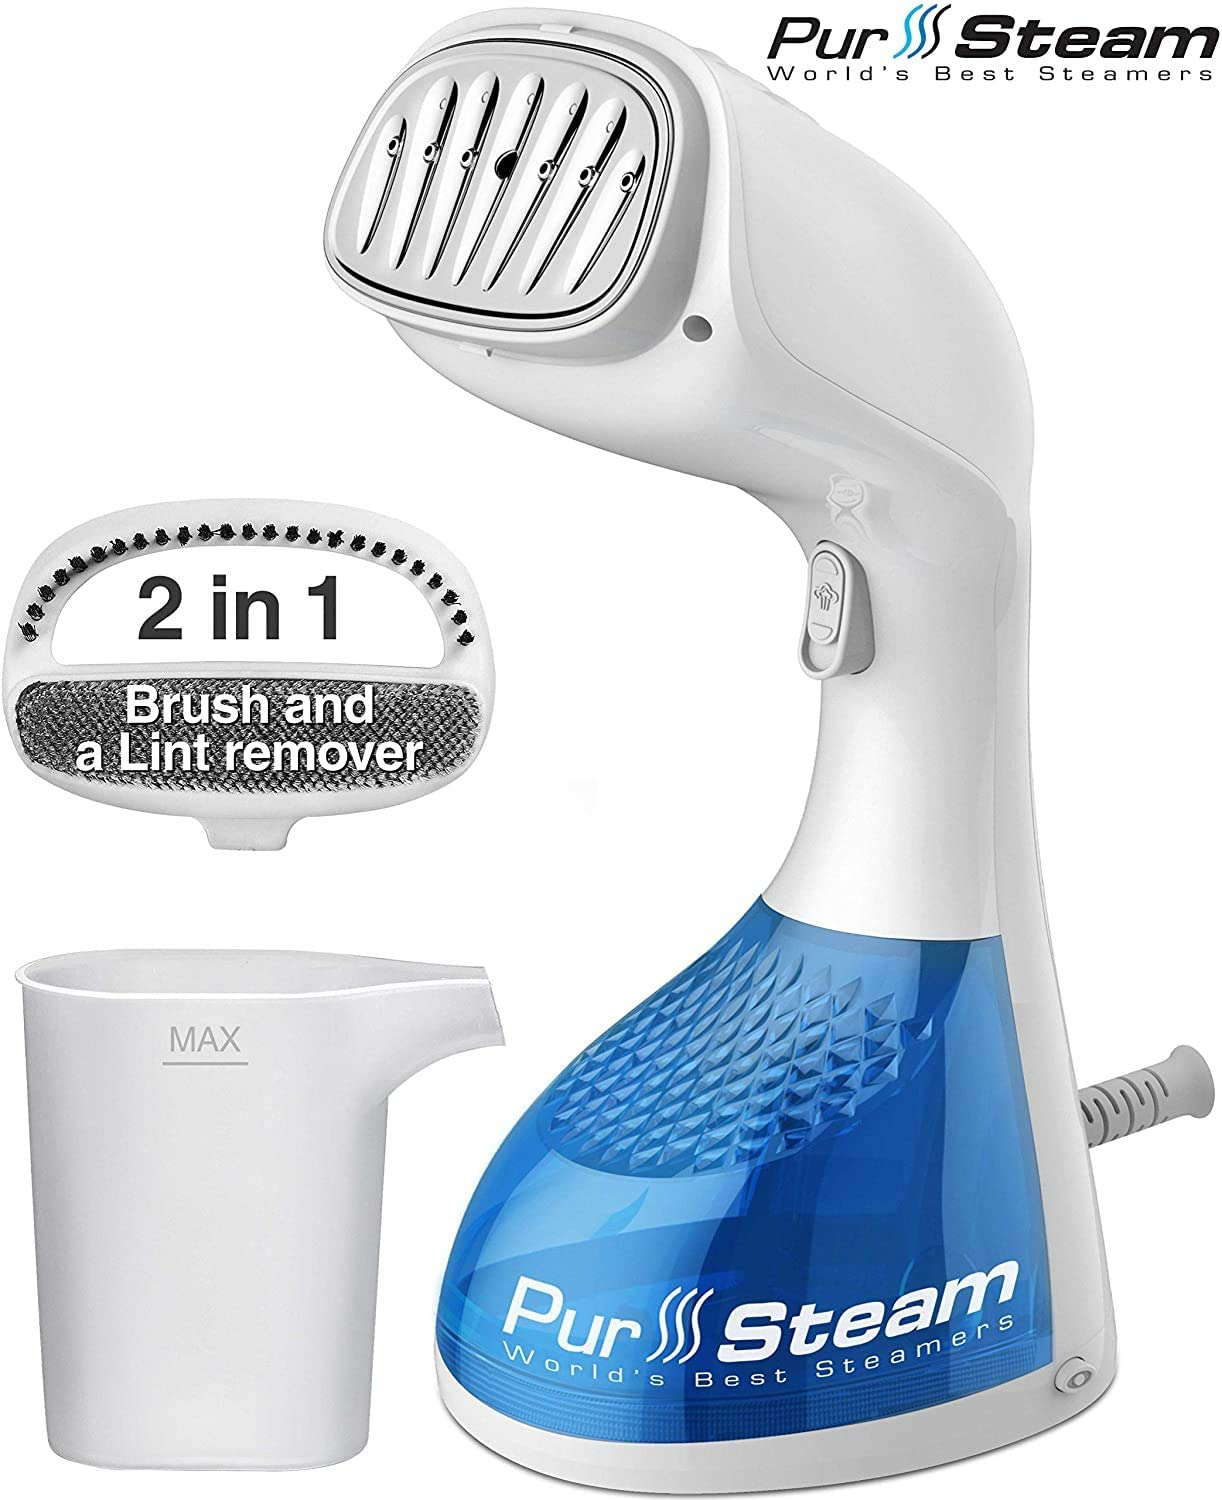 PurSteam Handheld 1400-Watt Clothes Steamer & Sterilizer